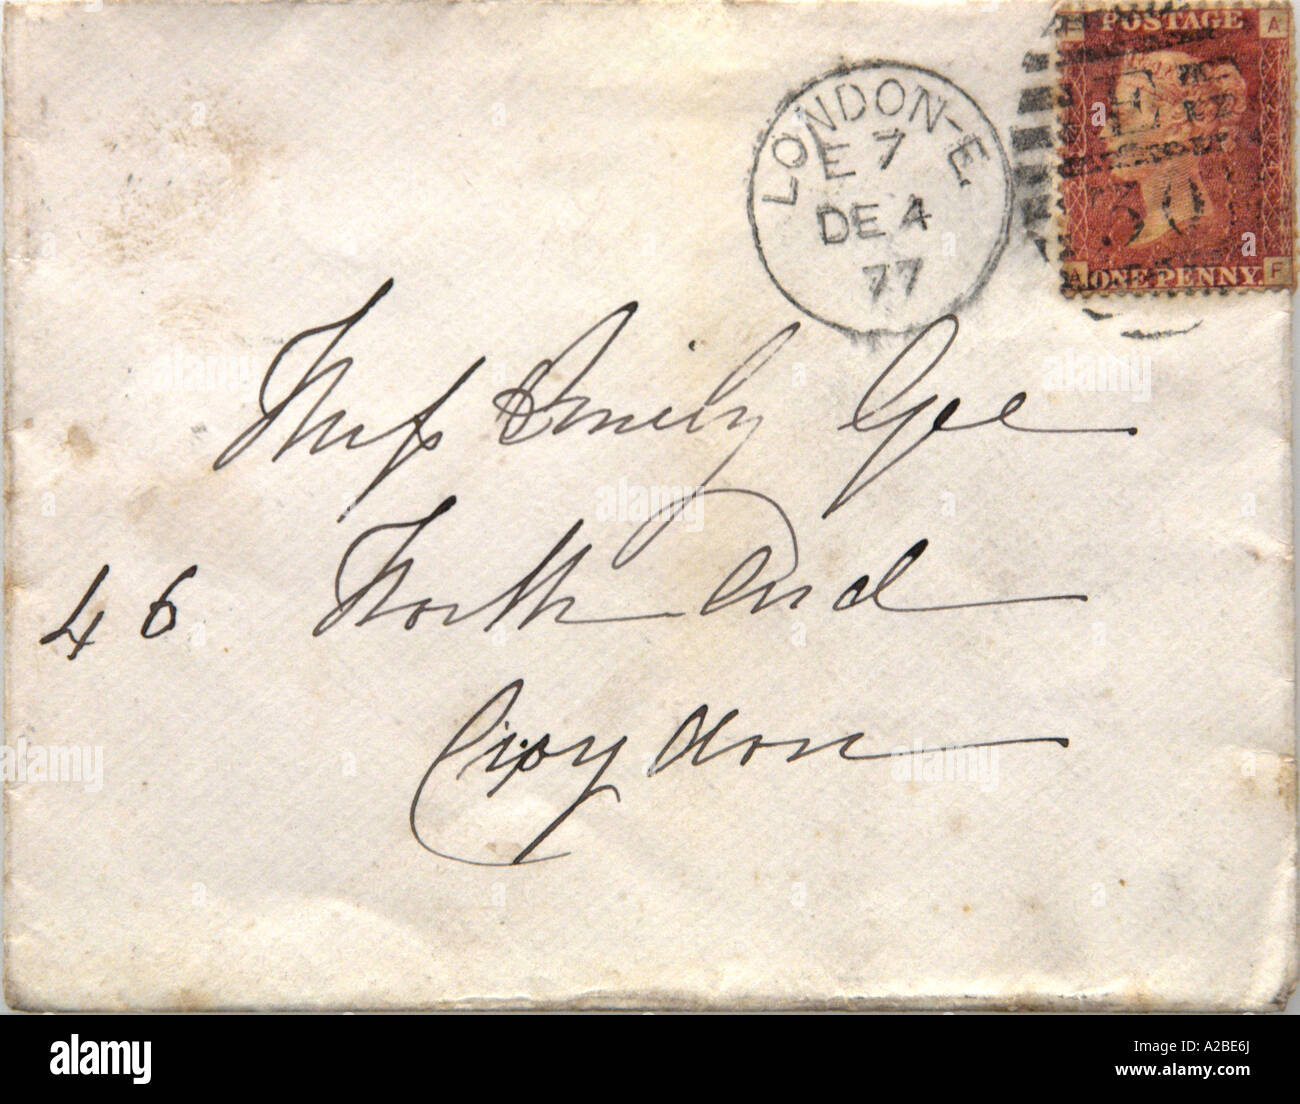 Penny Red on Envelope - Stock Image